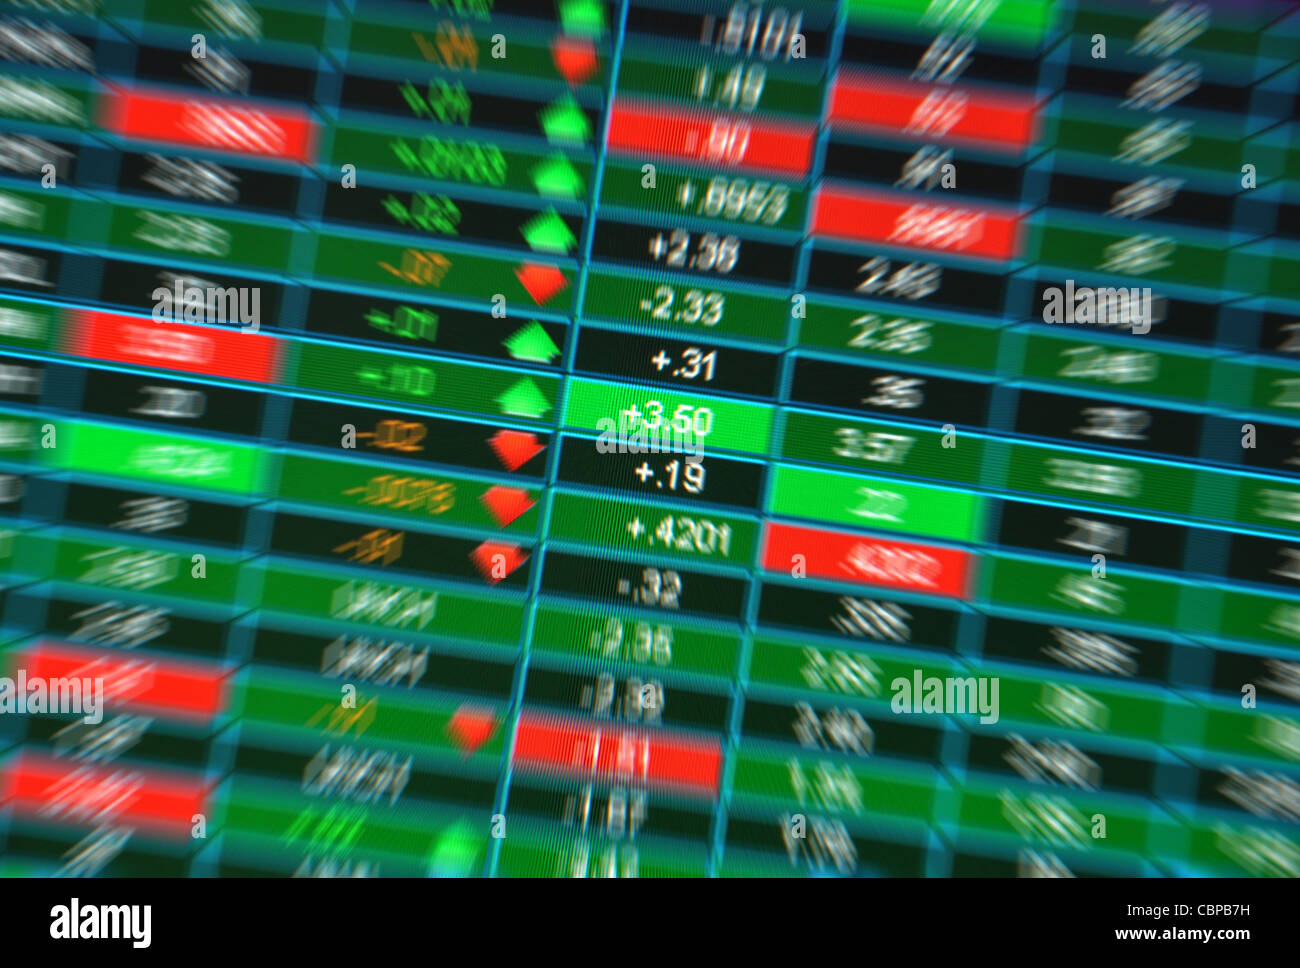 Blurred stock market quotes from a computer screen, Great concept for a fast paced or uncertain market - Stock Image